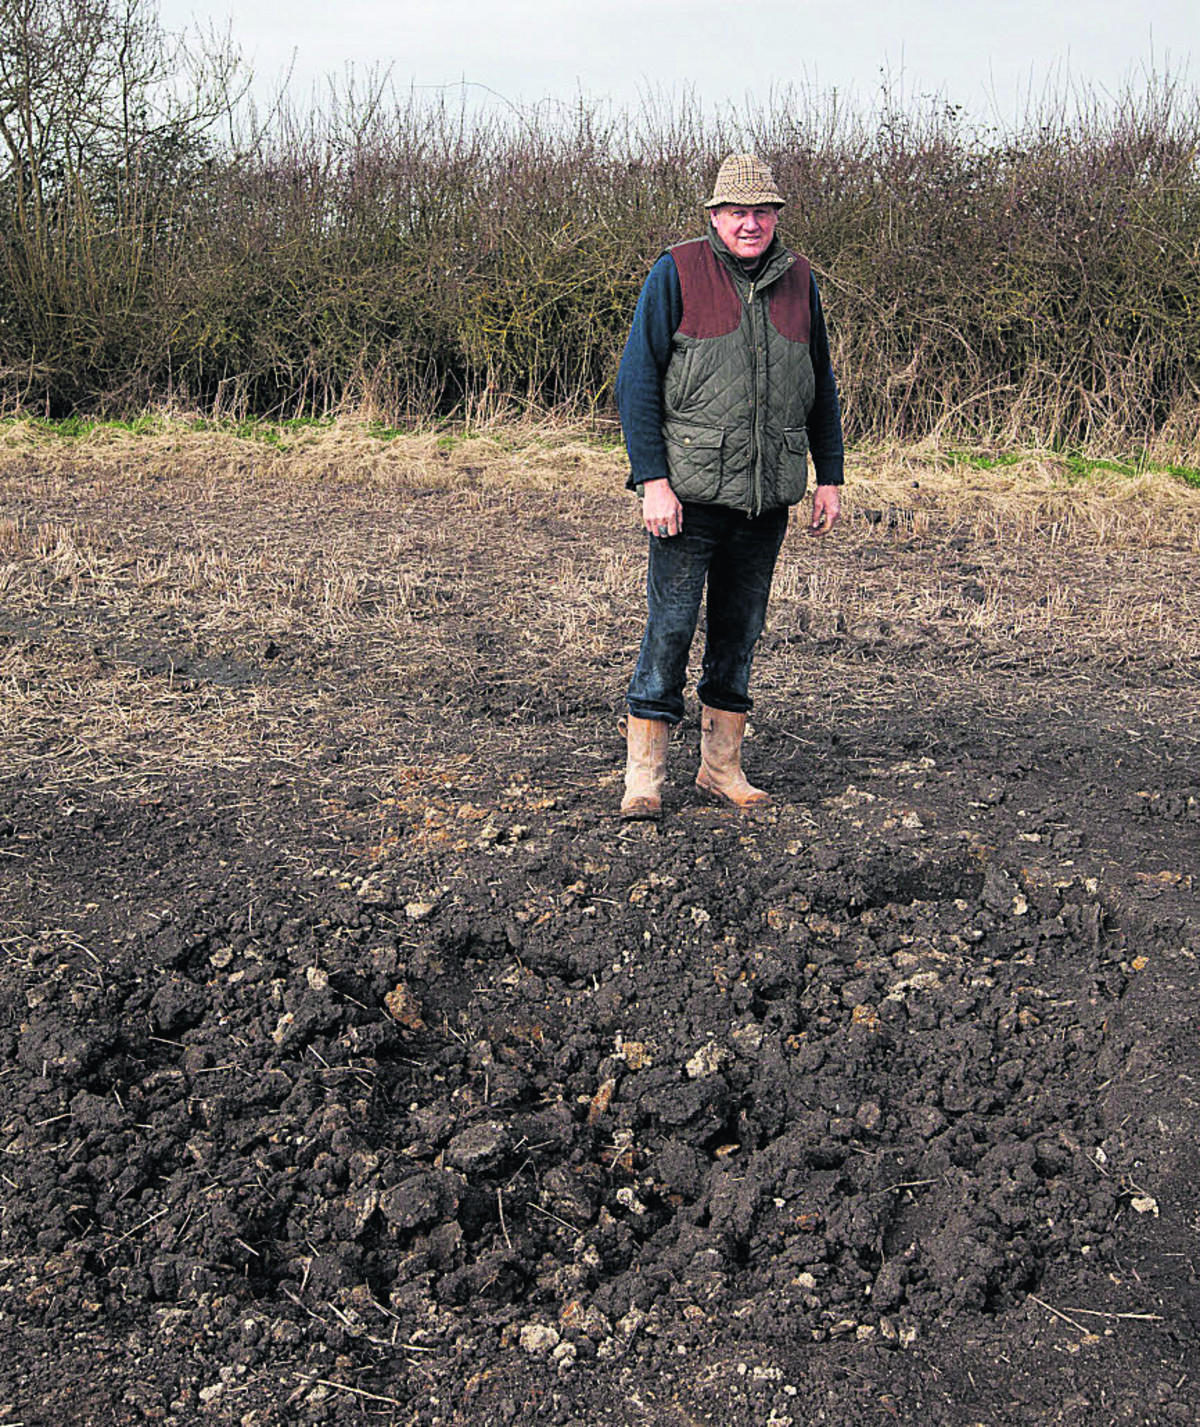 Andrew Snook next to the crater on his farm at Patney. An Army shell landed in